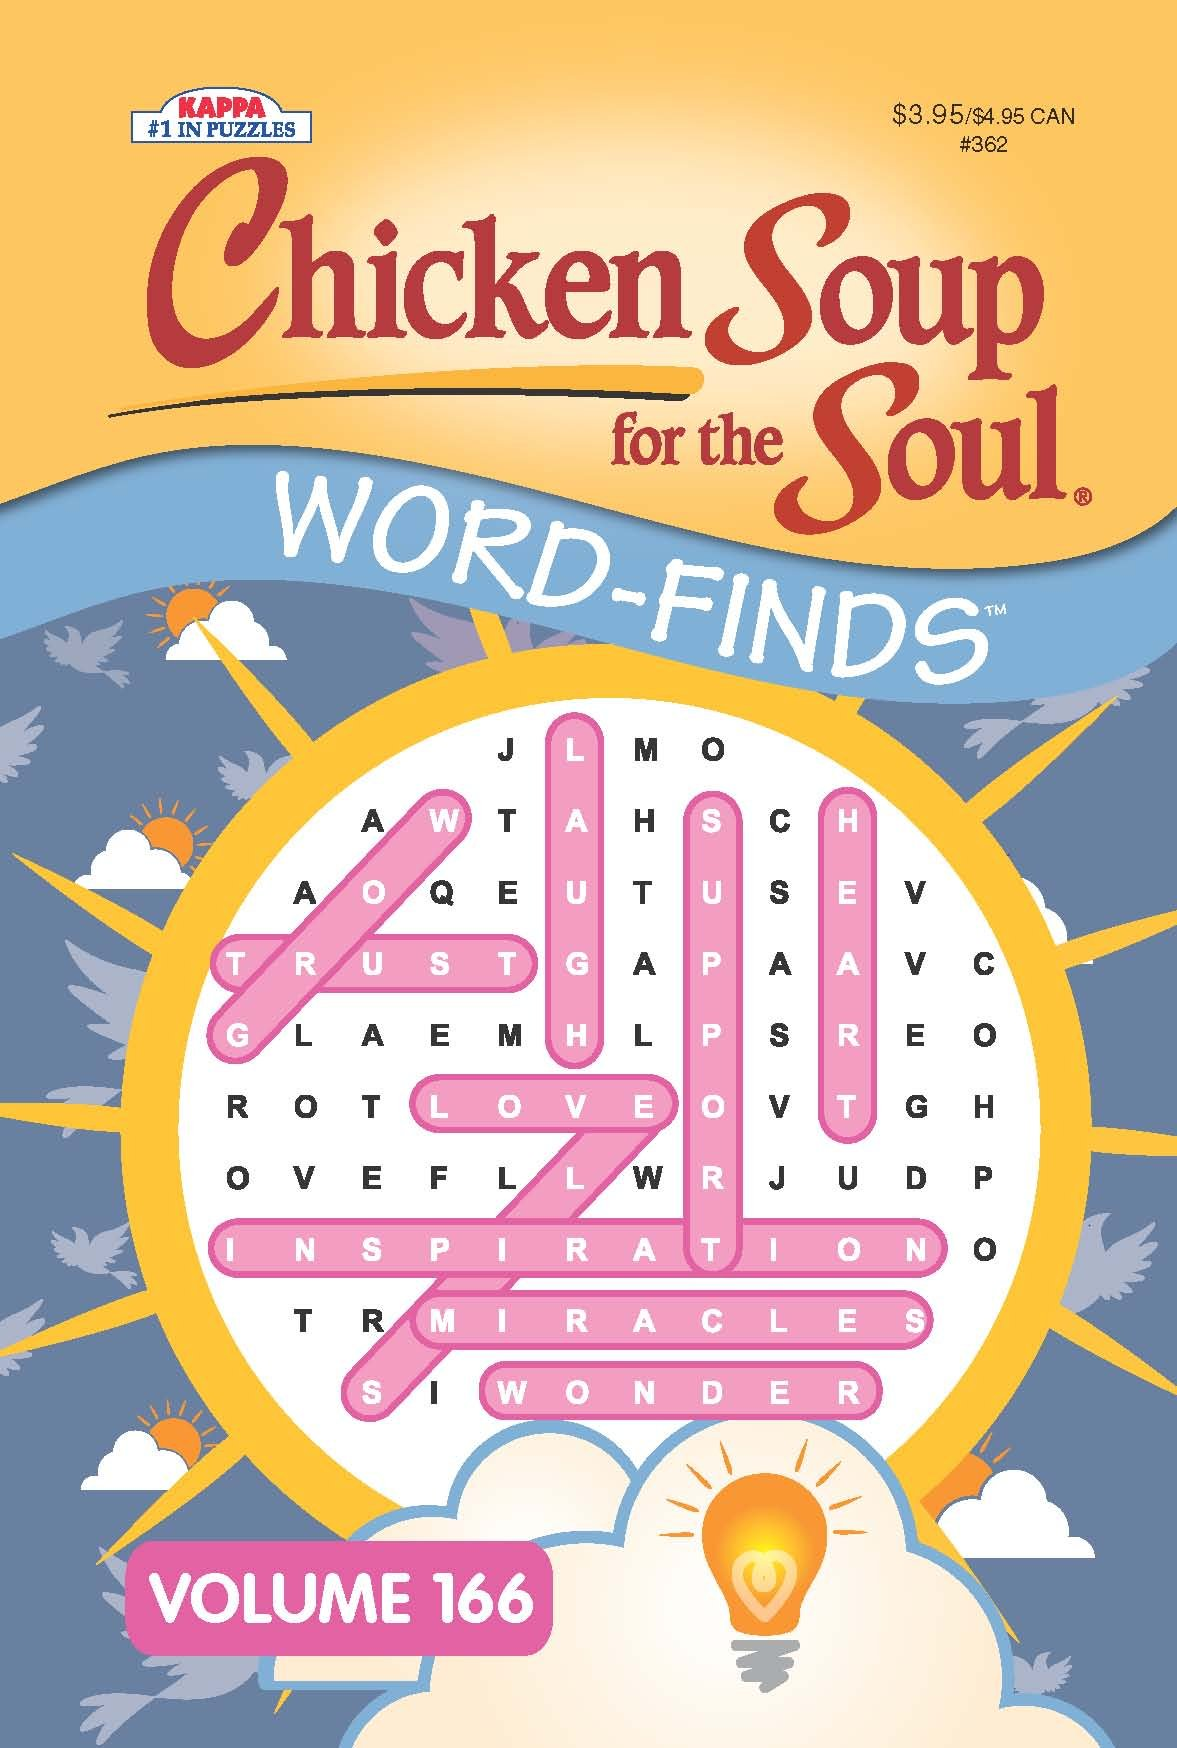 Chicken Soup Search Puzzle Book Vol 194 product image